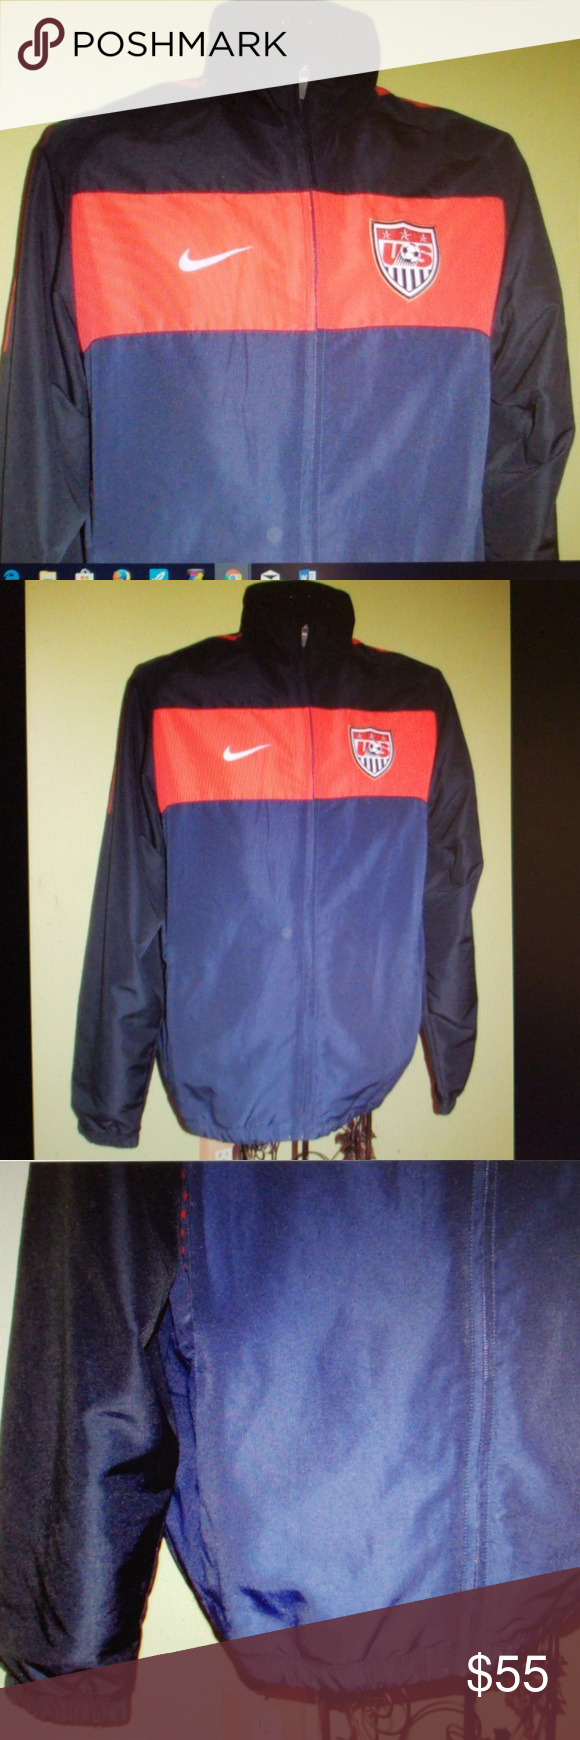 94ce663263 NEW Men s NIKE Navy Blue Jacket in LARGE Nike US Soccer Zip Track Jacket  Windbreaker in Navy Blue and Red Size Large Full Zip.